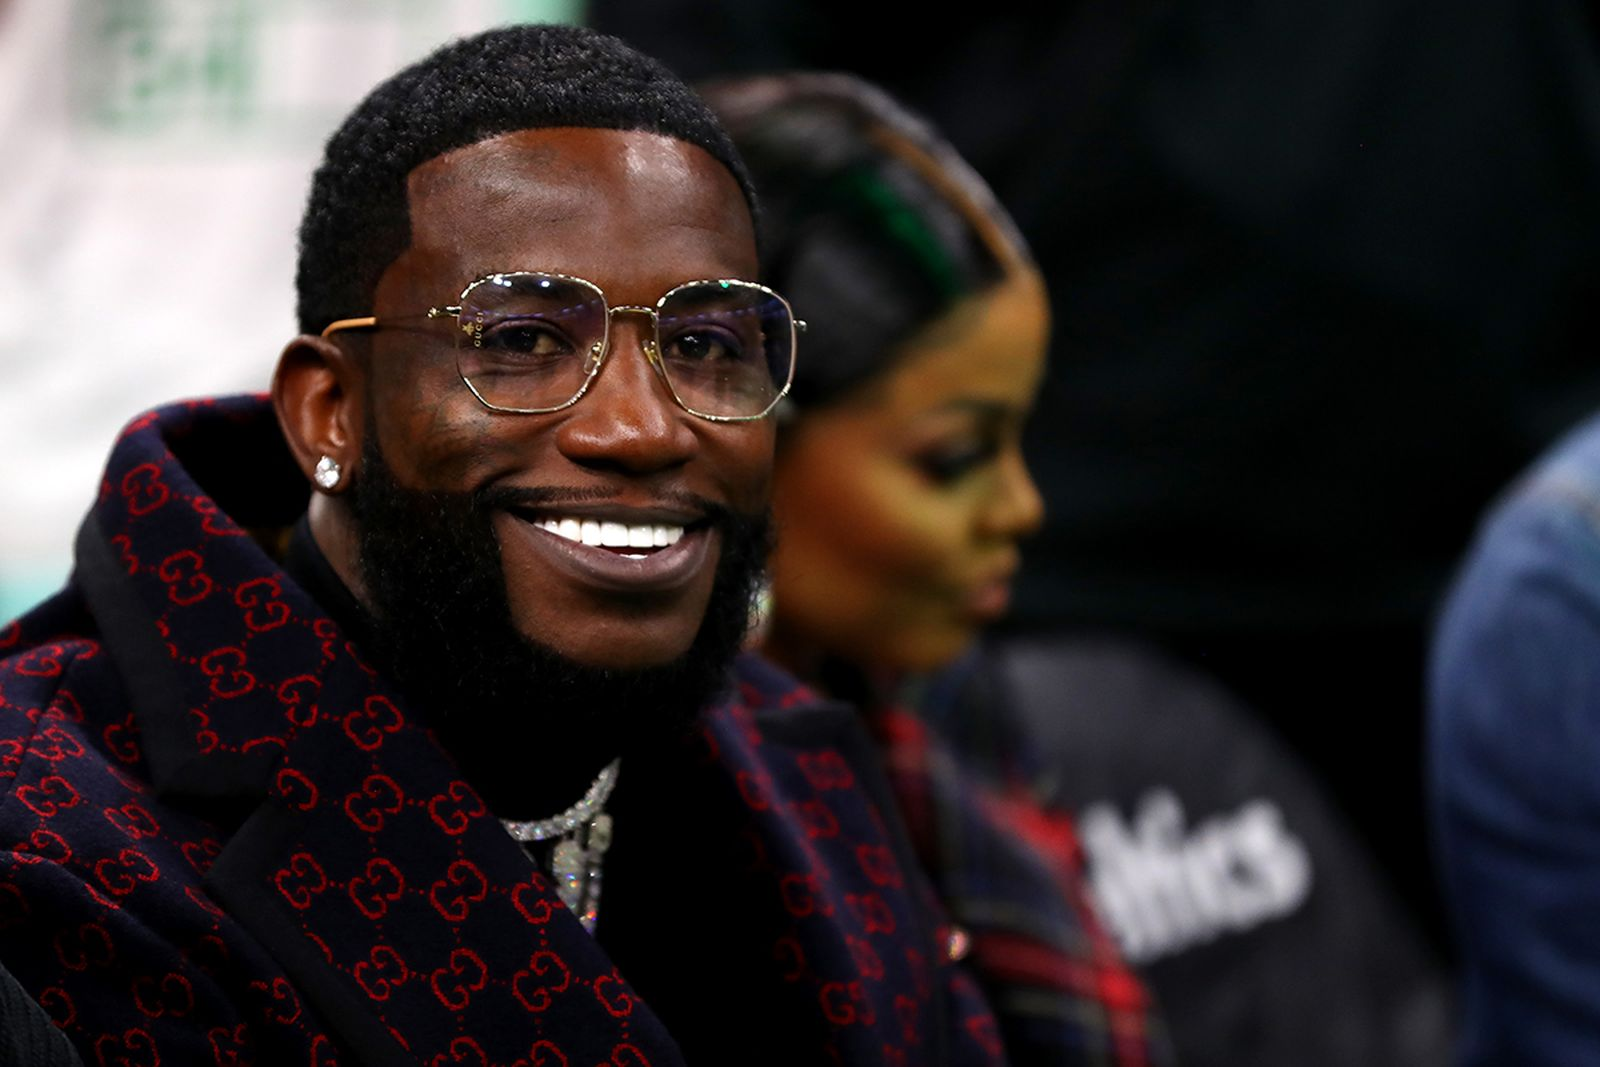 Gucci Mane glasses Gucci coat